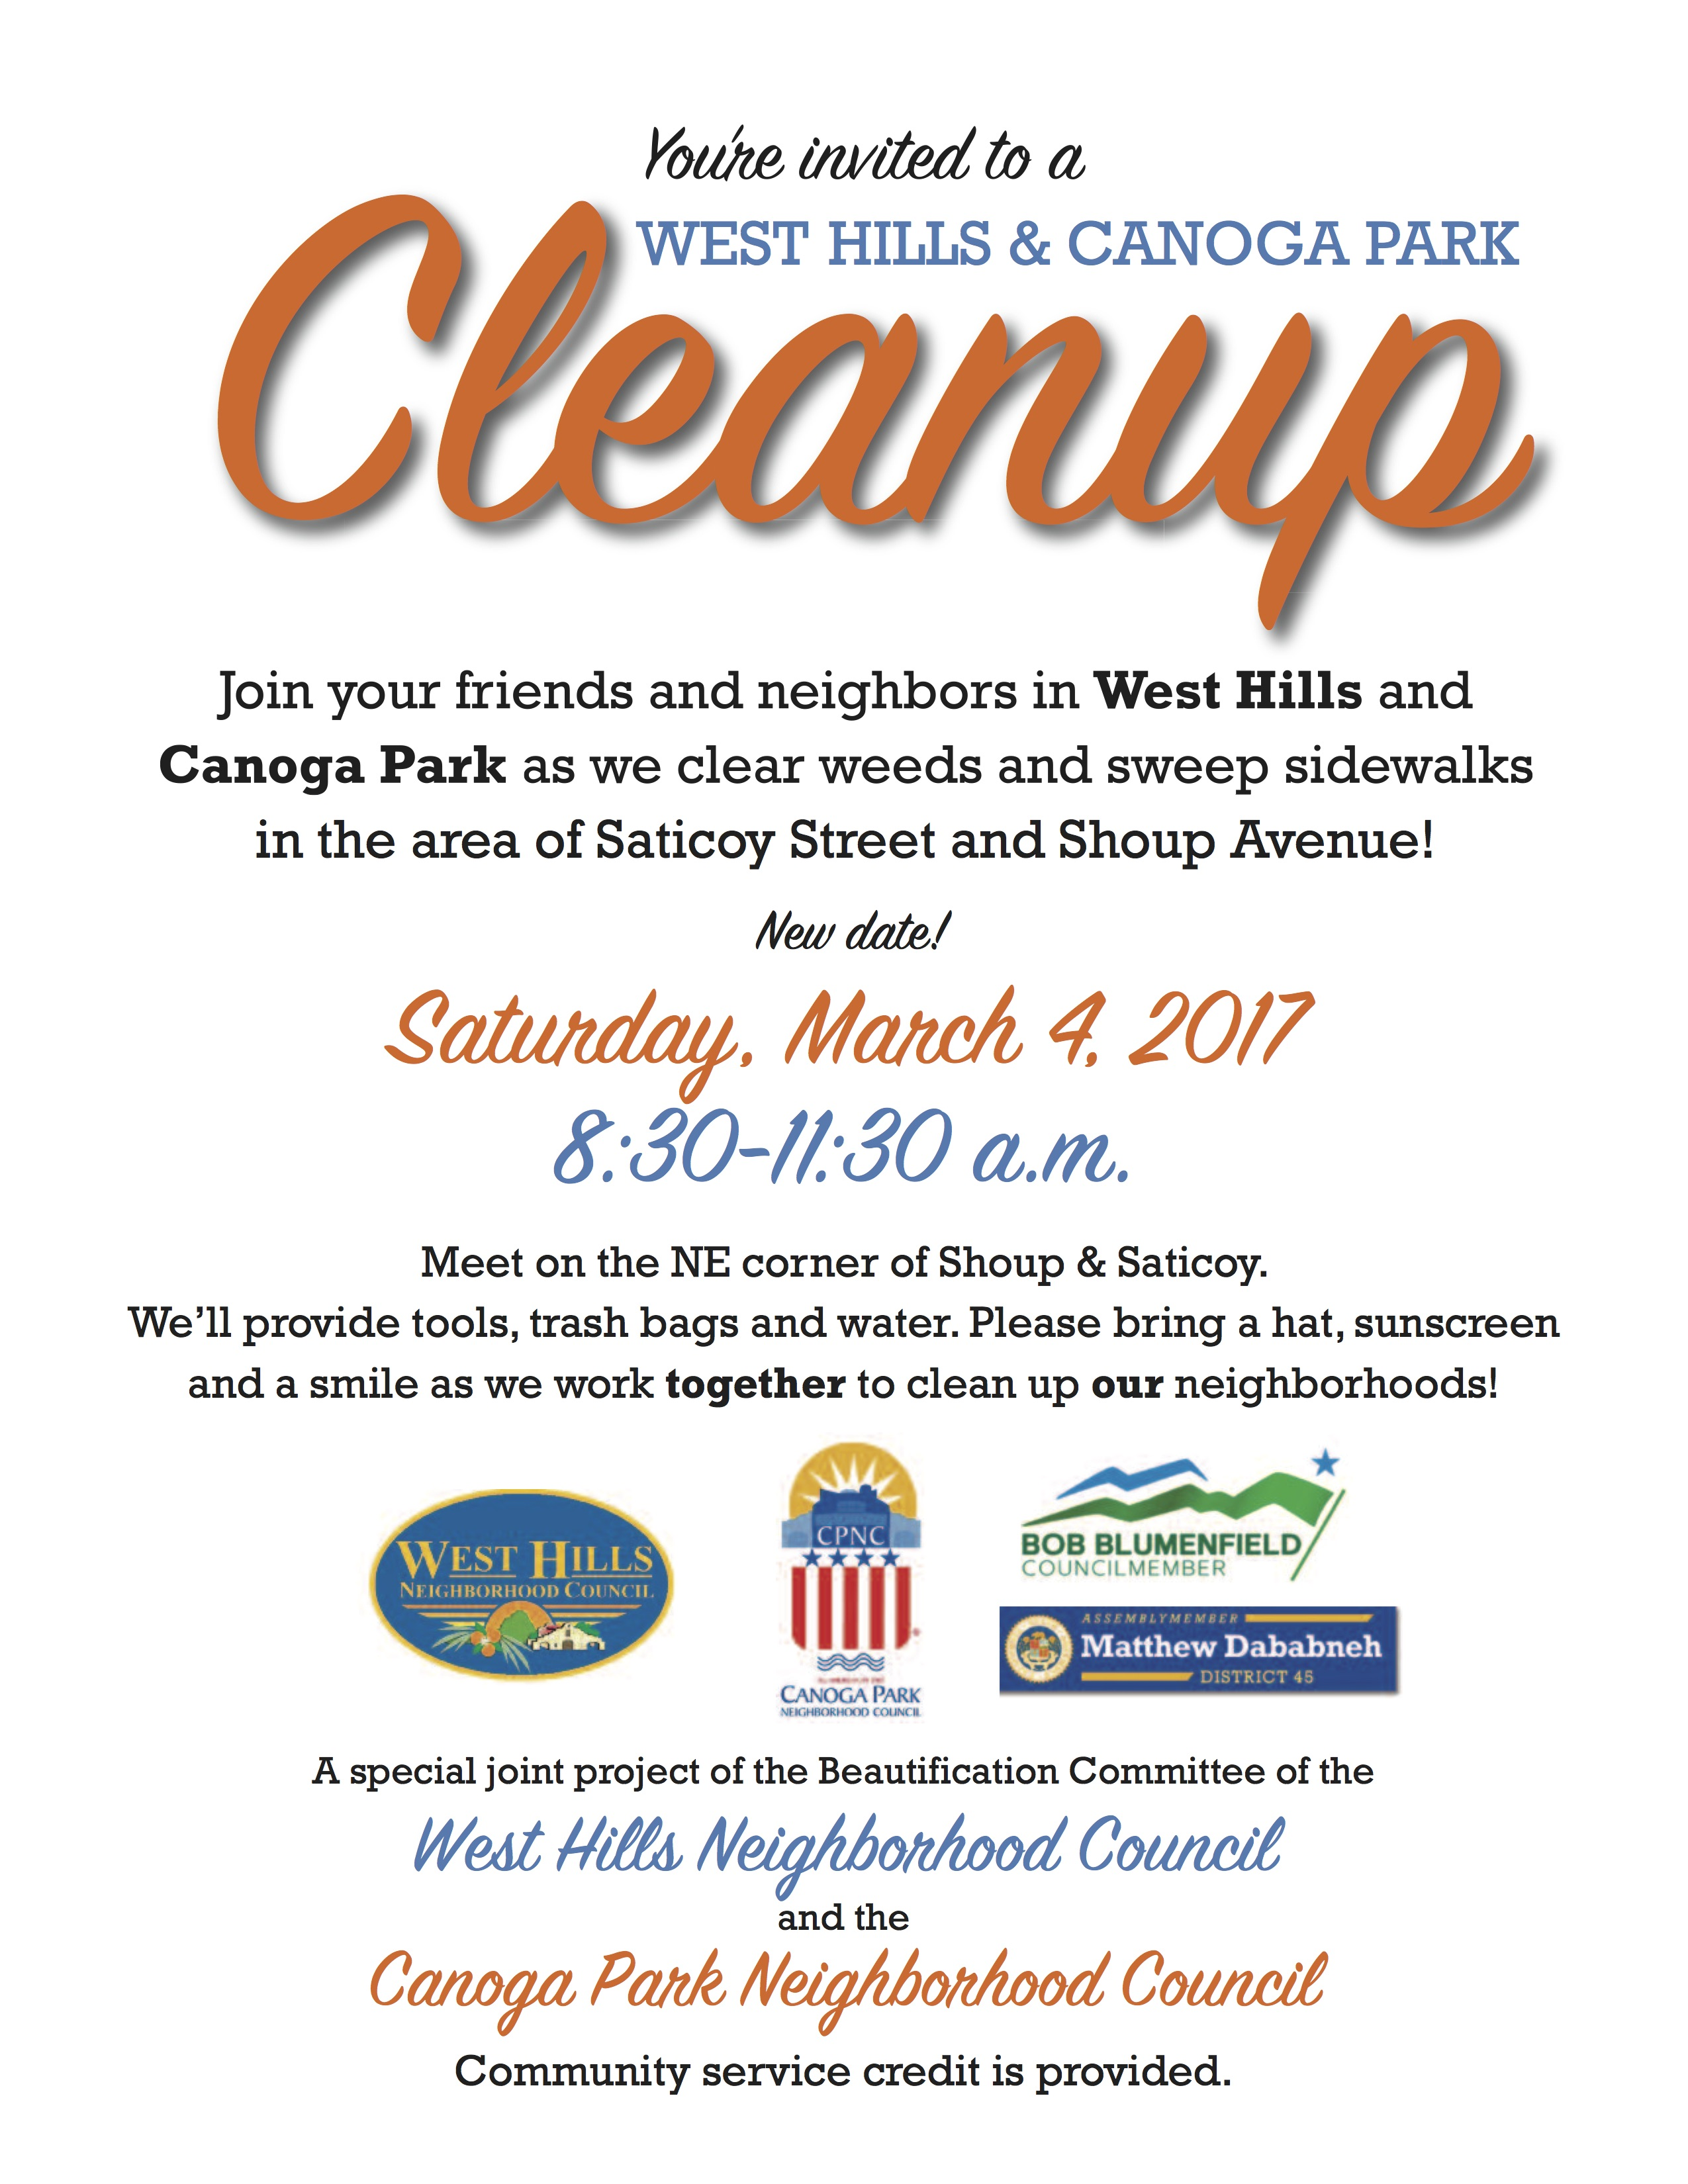 cleanup_flyer_wh___cp_March_4.jpg